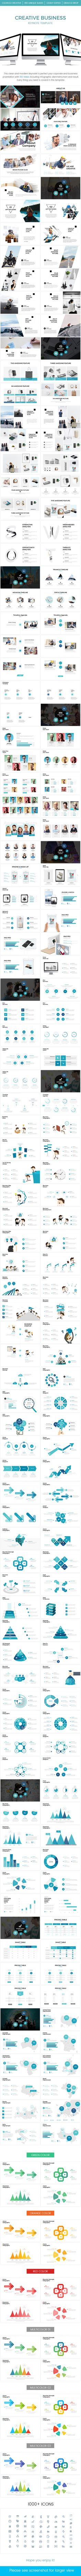 Creative Business Keynote Template - Keynote Templates Presentation Templates